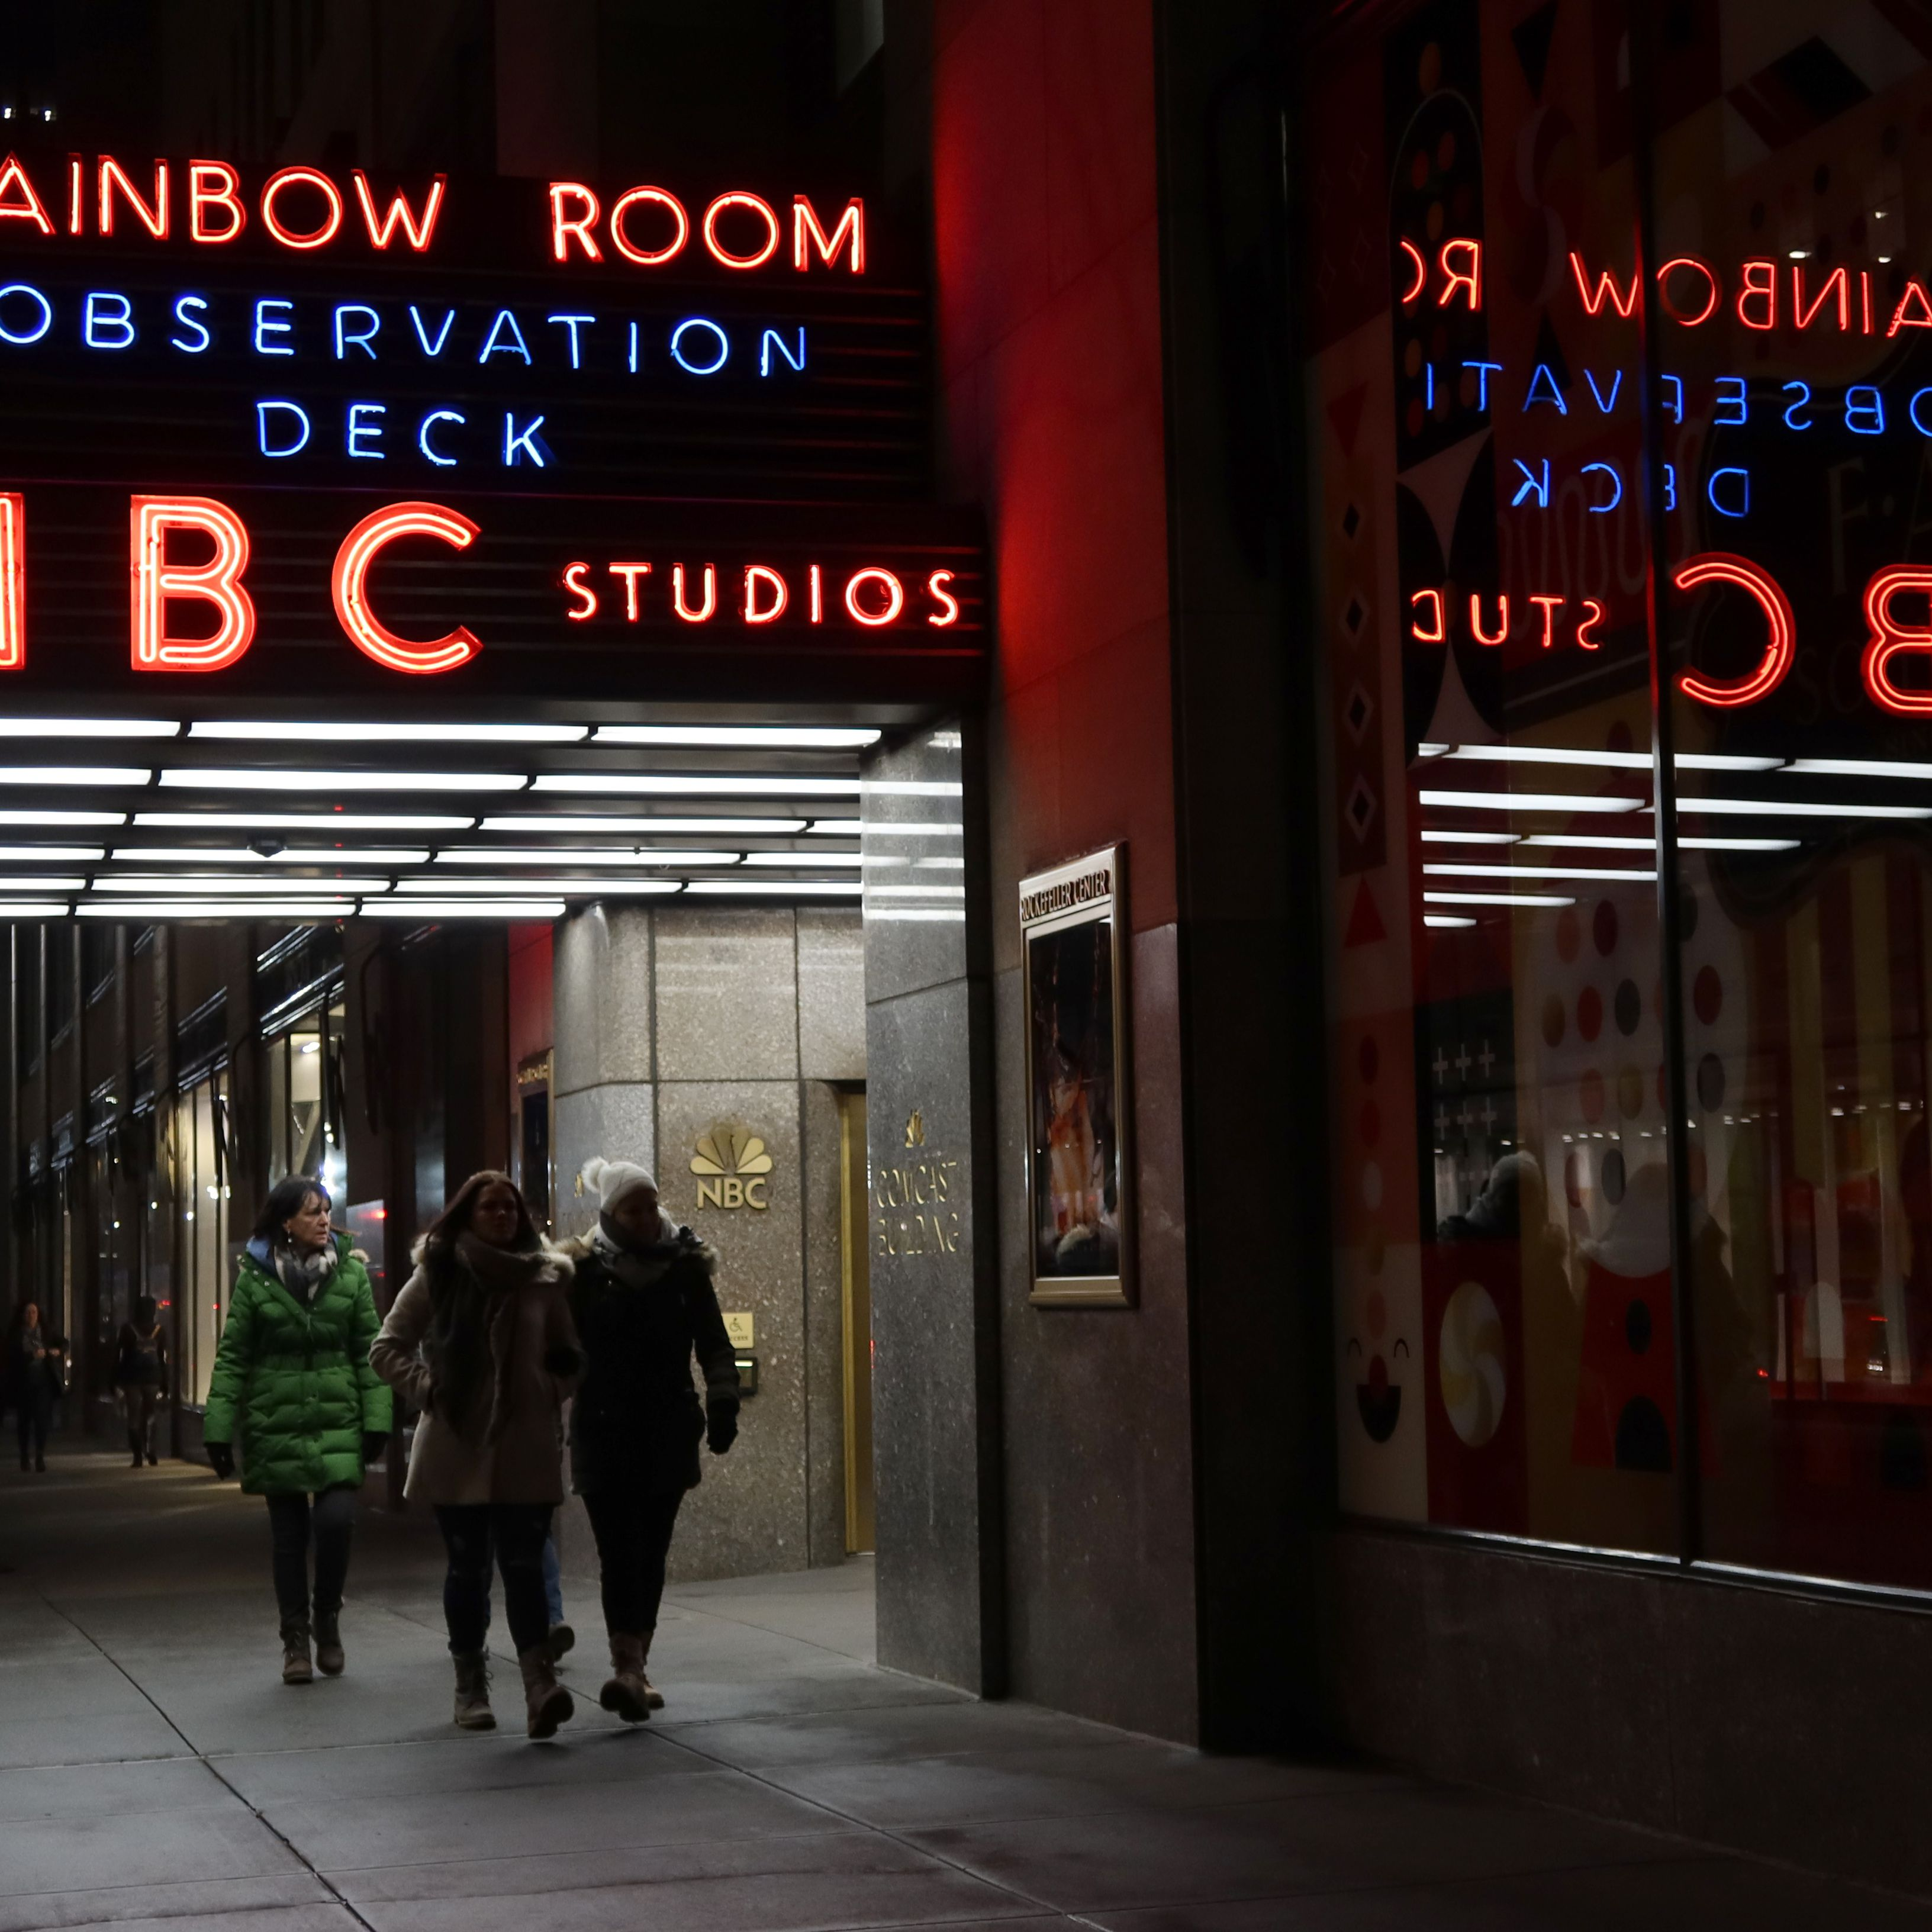 How To Get Tickets For A Tv Show Taping At Rockefeller Center